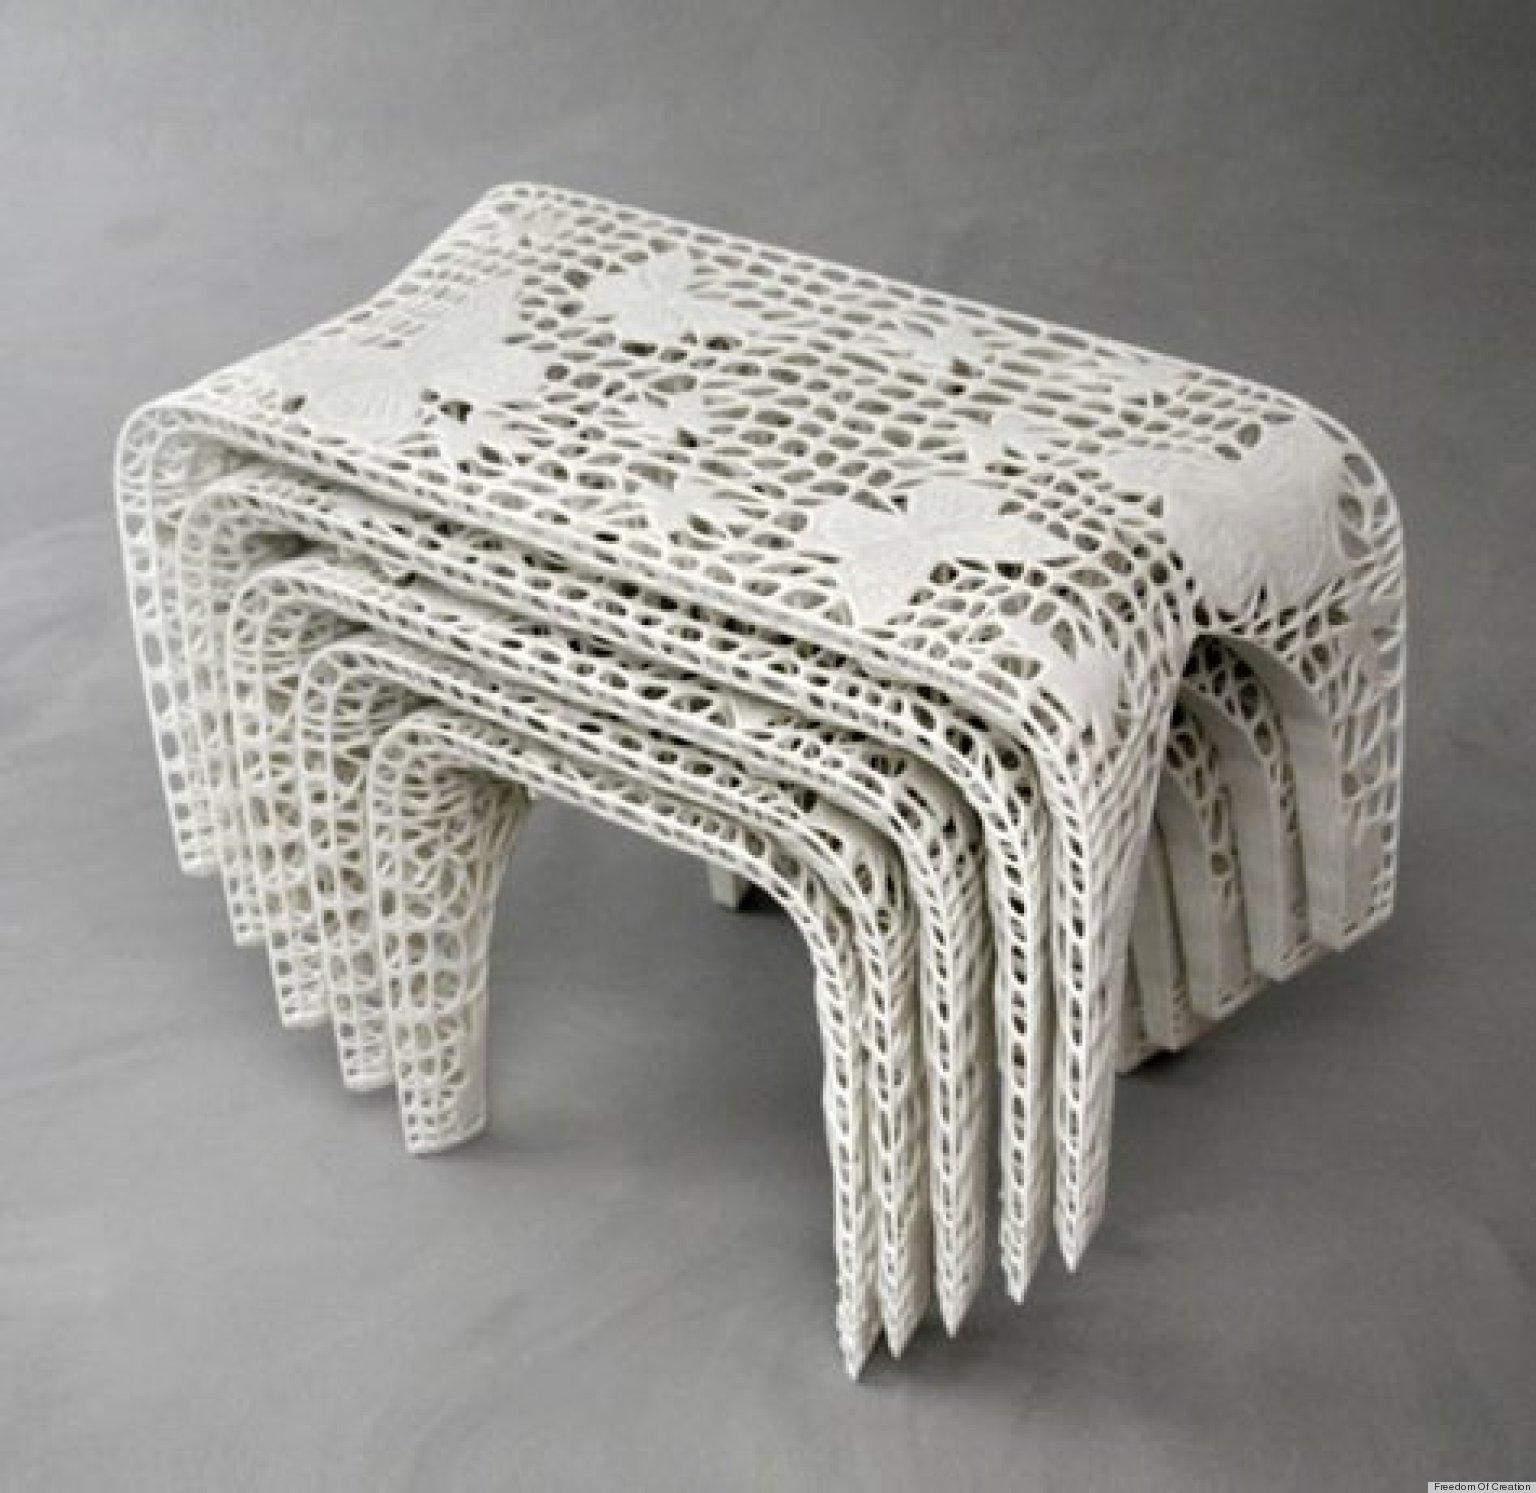 3d Printing Cool Home Decor And Furniture Designs On The